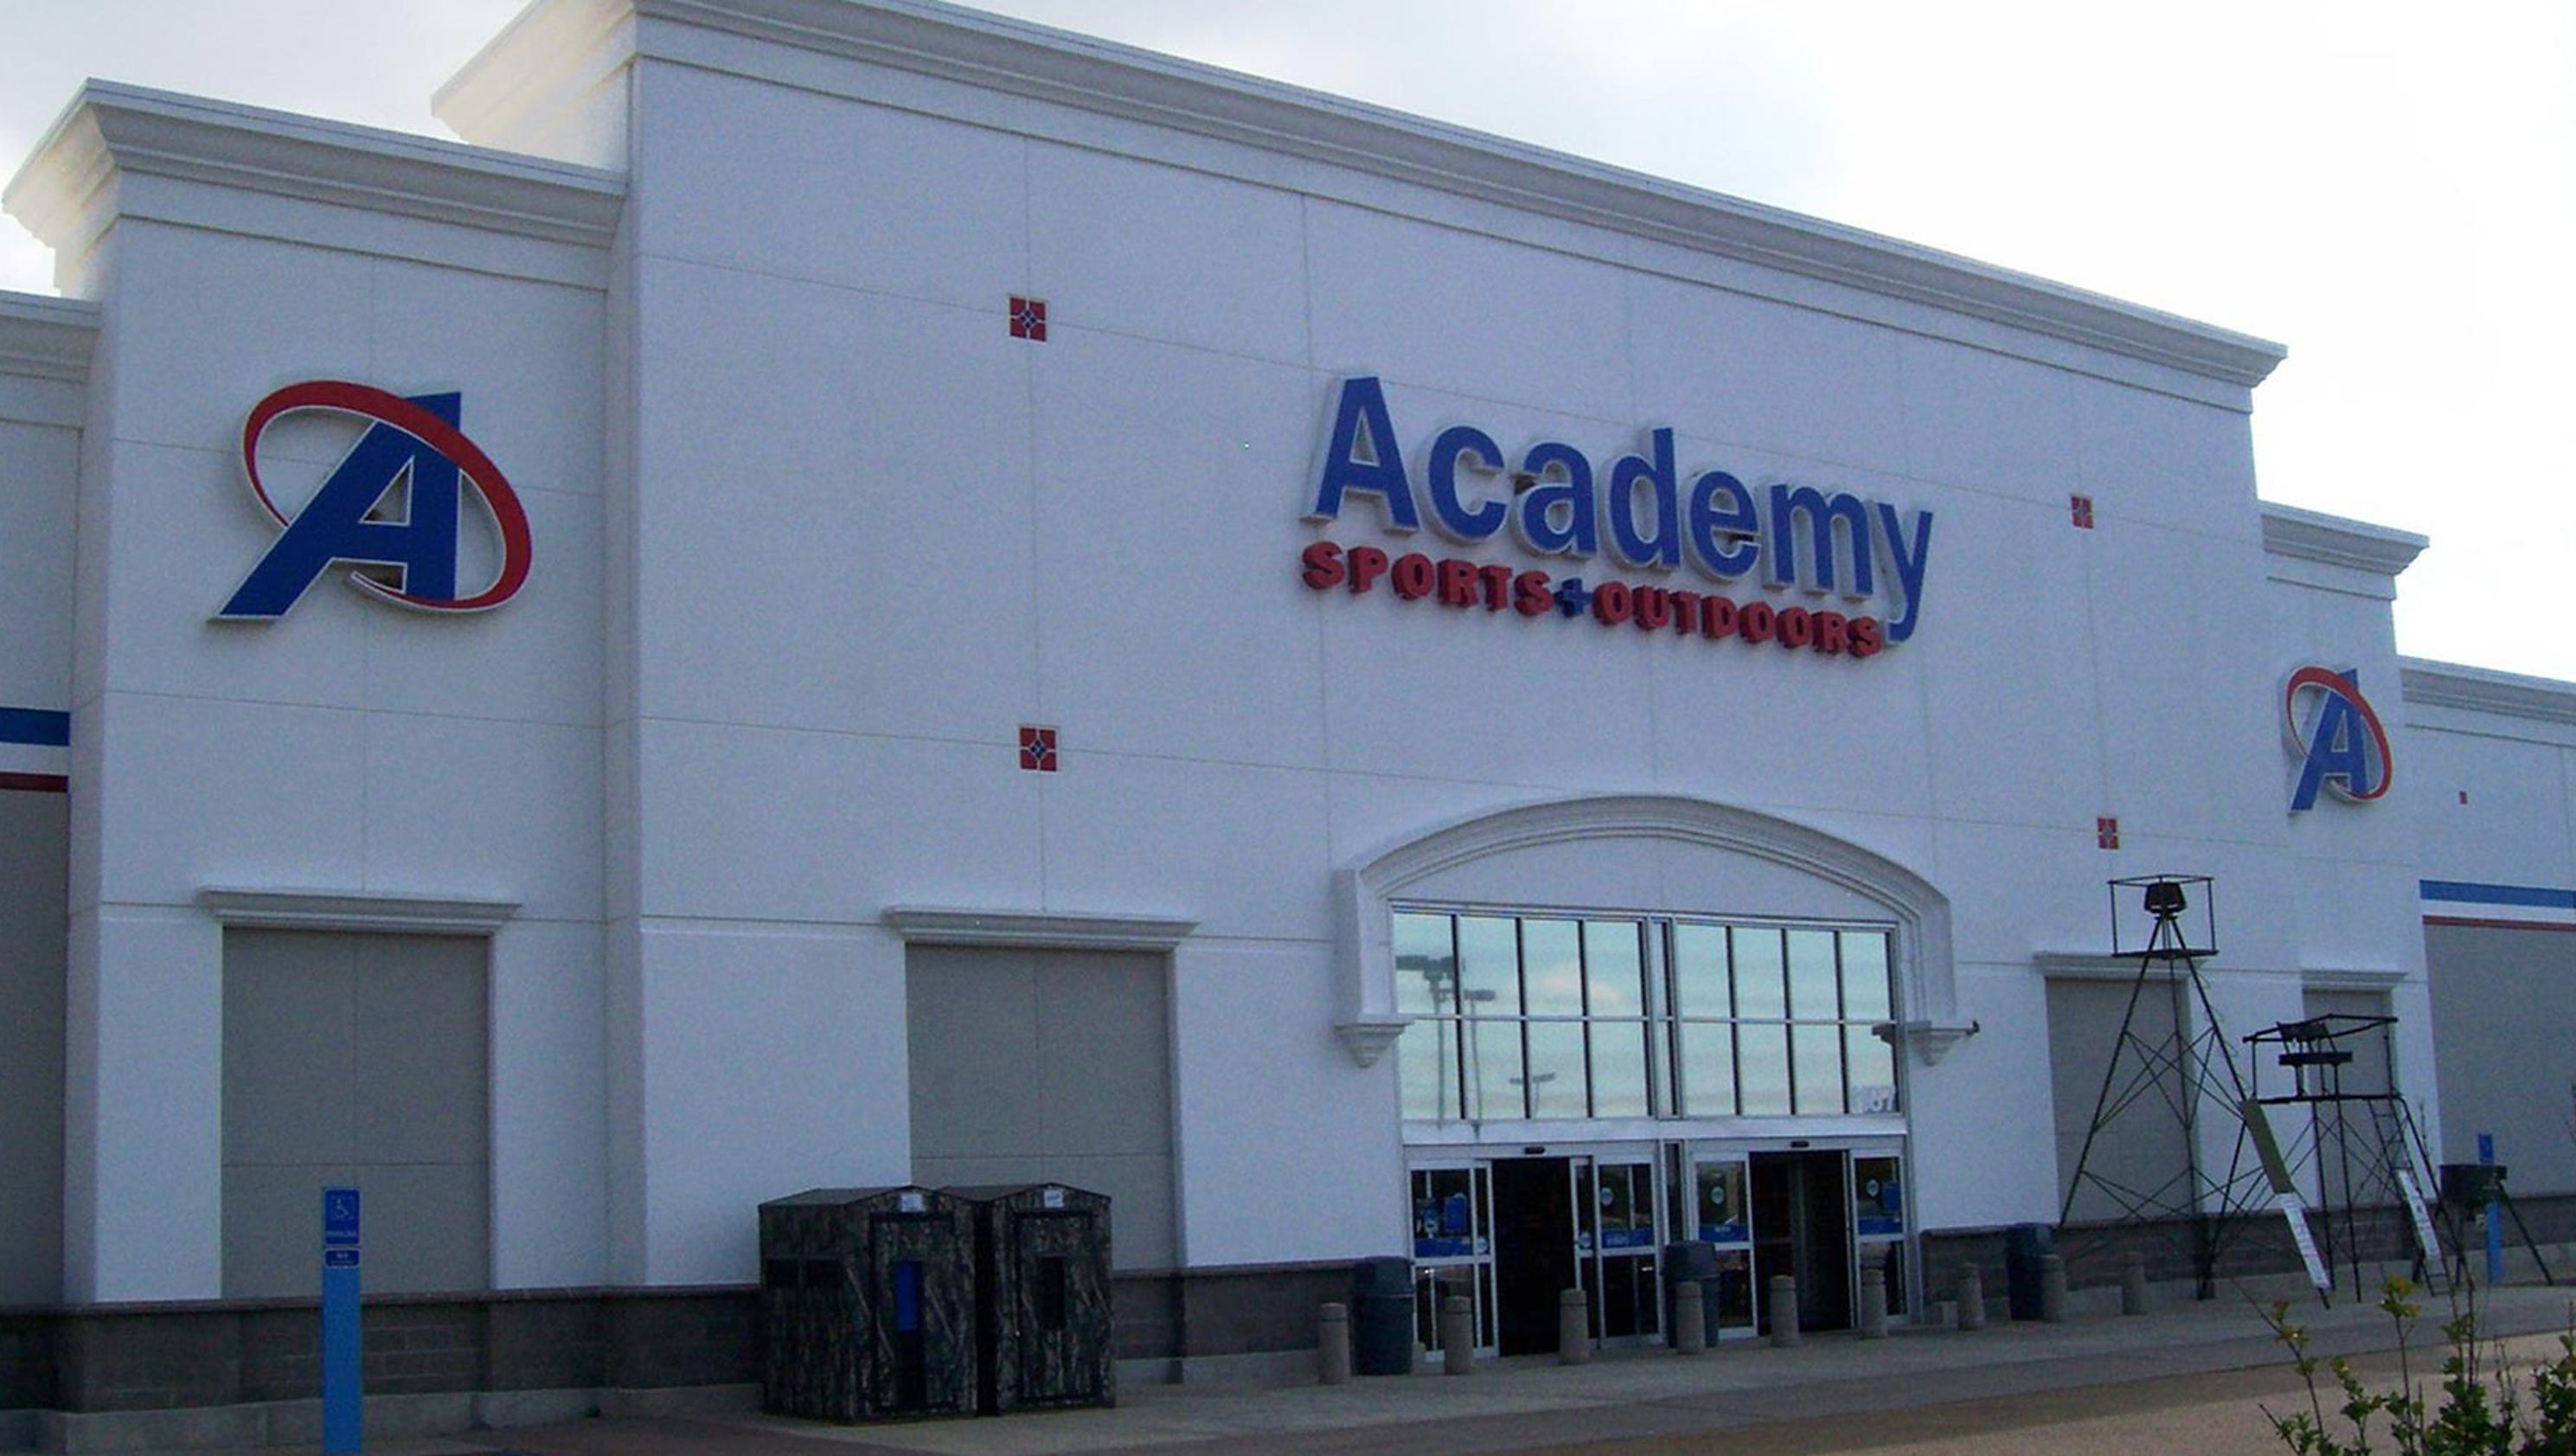 Academy Sports + Outdoors 3, reviews. Jackson, MS +1 location. Academy is an Equal Opportunity Employer and does not discriminate with regard to employment opportunities or practices on the basis of race, Be the first to see new Academy Sports Outdoors jobs in Jackson, MS.